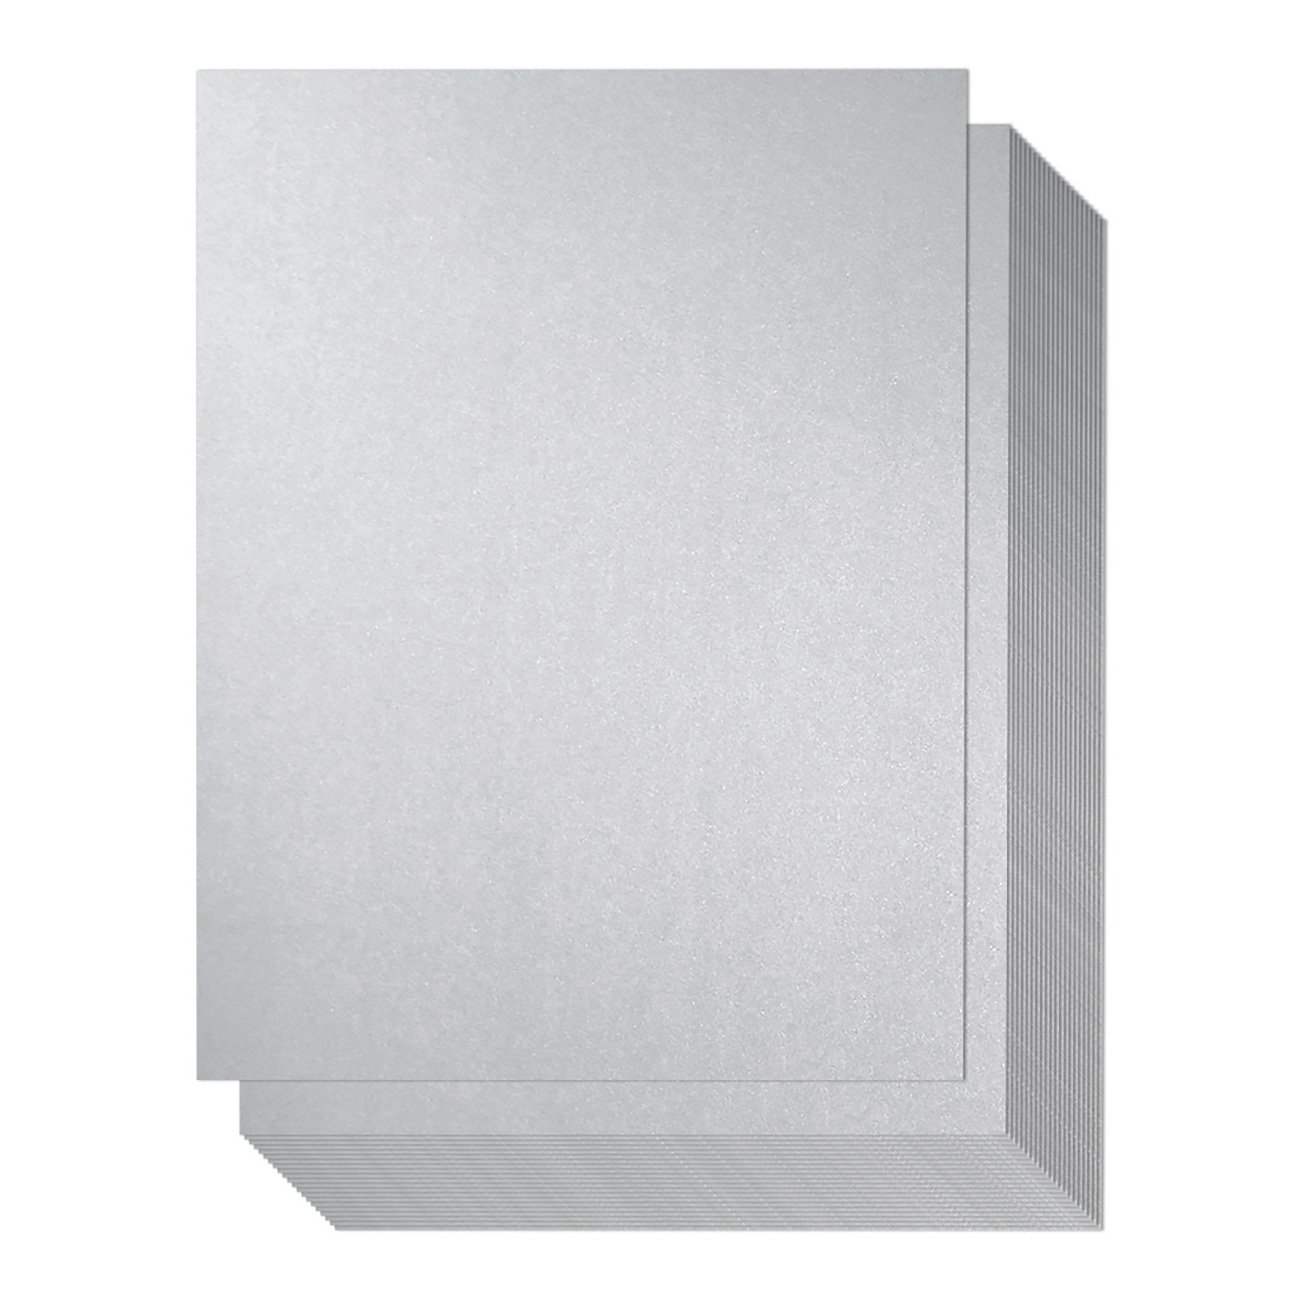 Shimmer Paper - 96 Pack-Silver Metallic Cardstock Paper, Double Sided, Laser Printer Friendly - Ideal for Weddings, Baby Showers, Birthdays, Craft, Letter Size Sheets, 250 GSM, 8.7 x 0.03 x 11 Inches by Best Paper Greetings